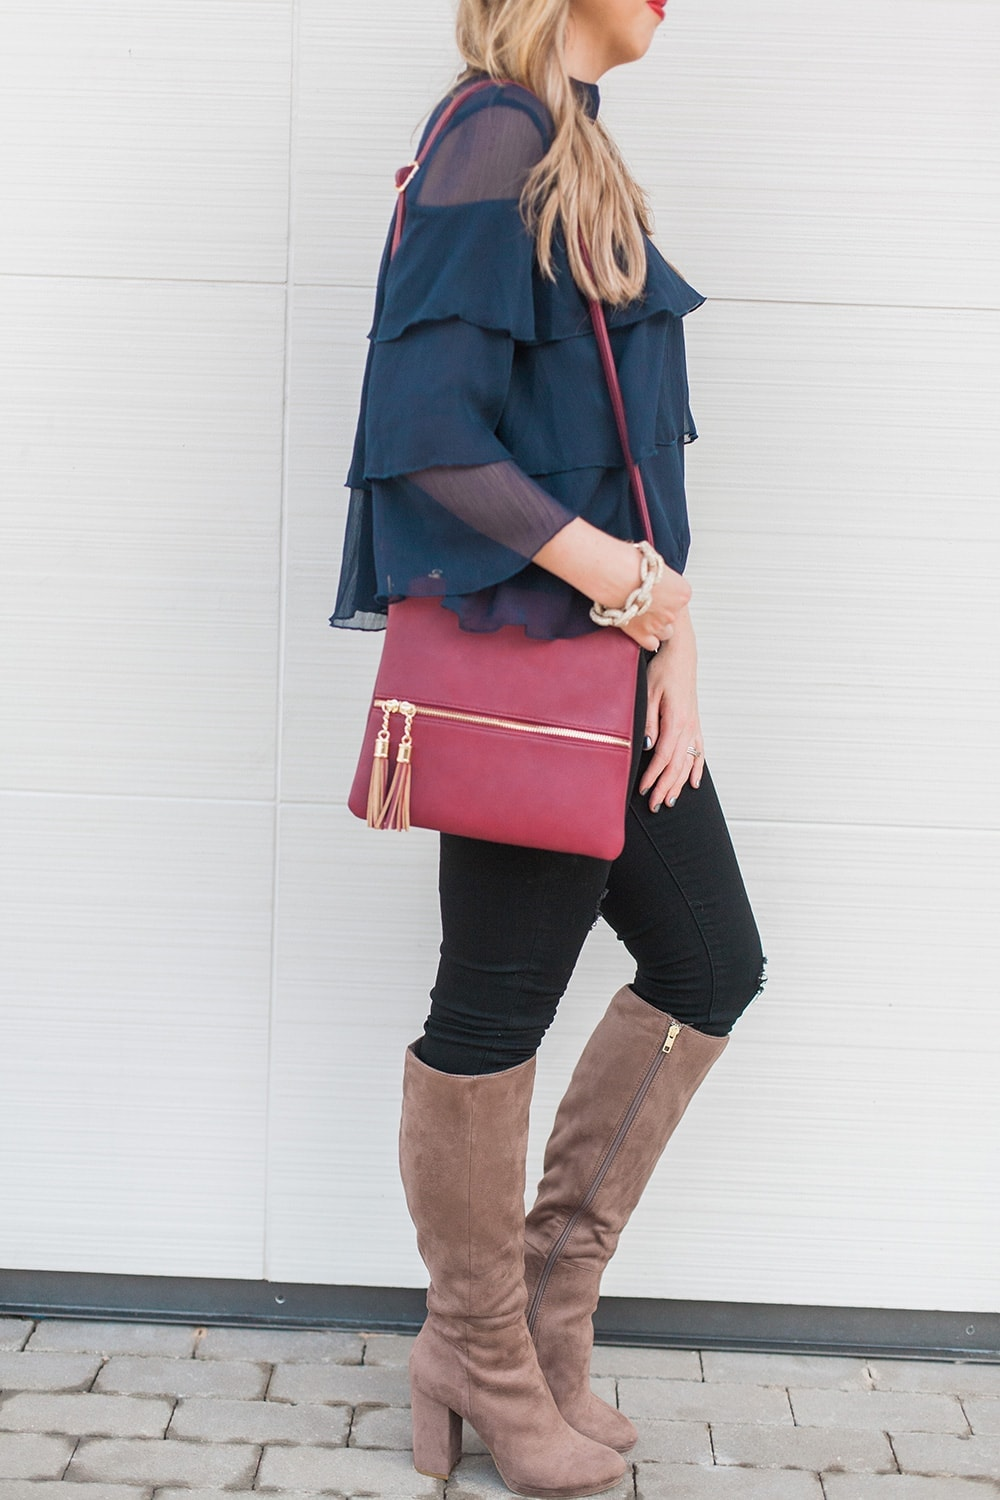 love the details of this outfit - navy ruffle blouse with boots